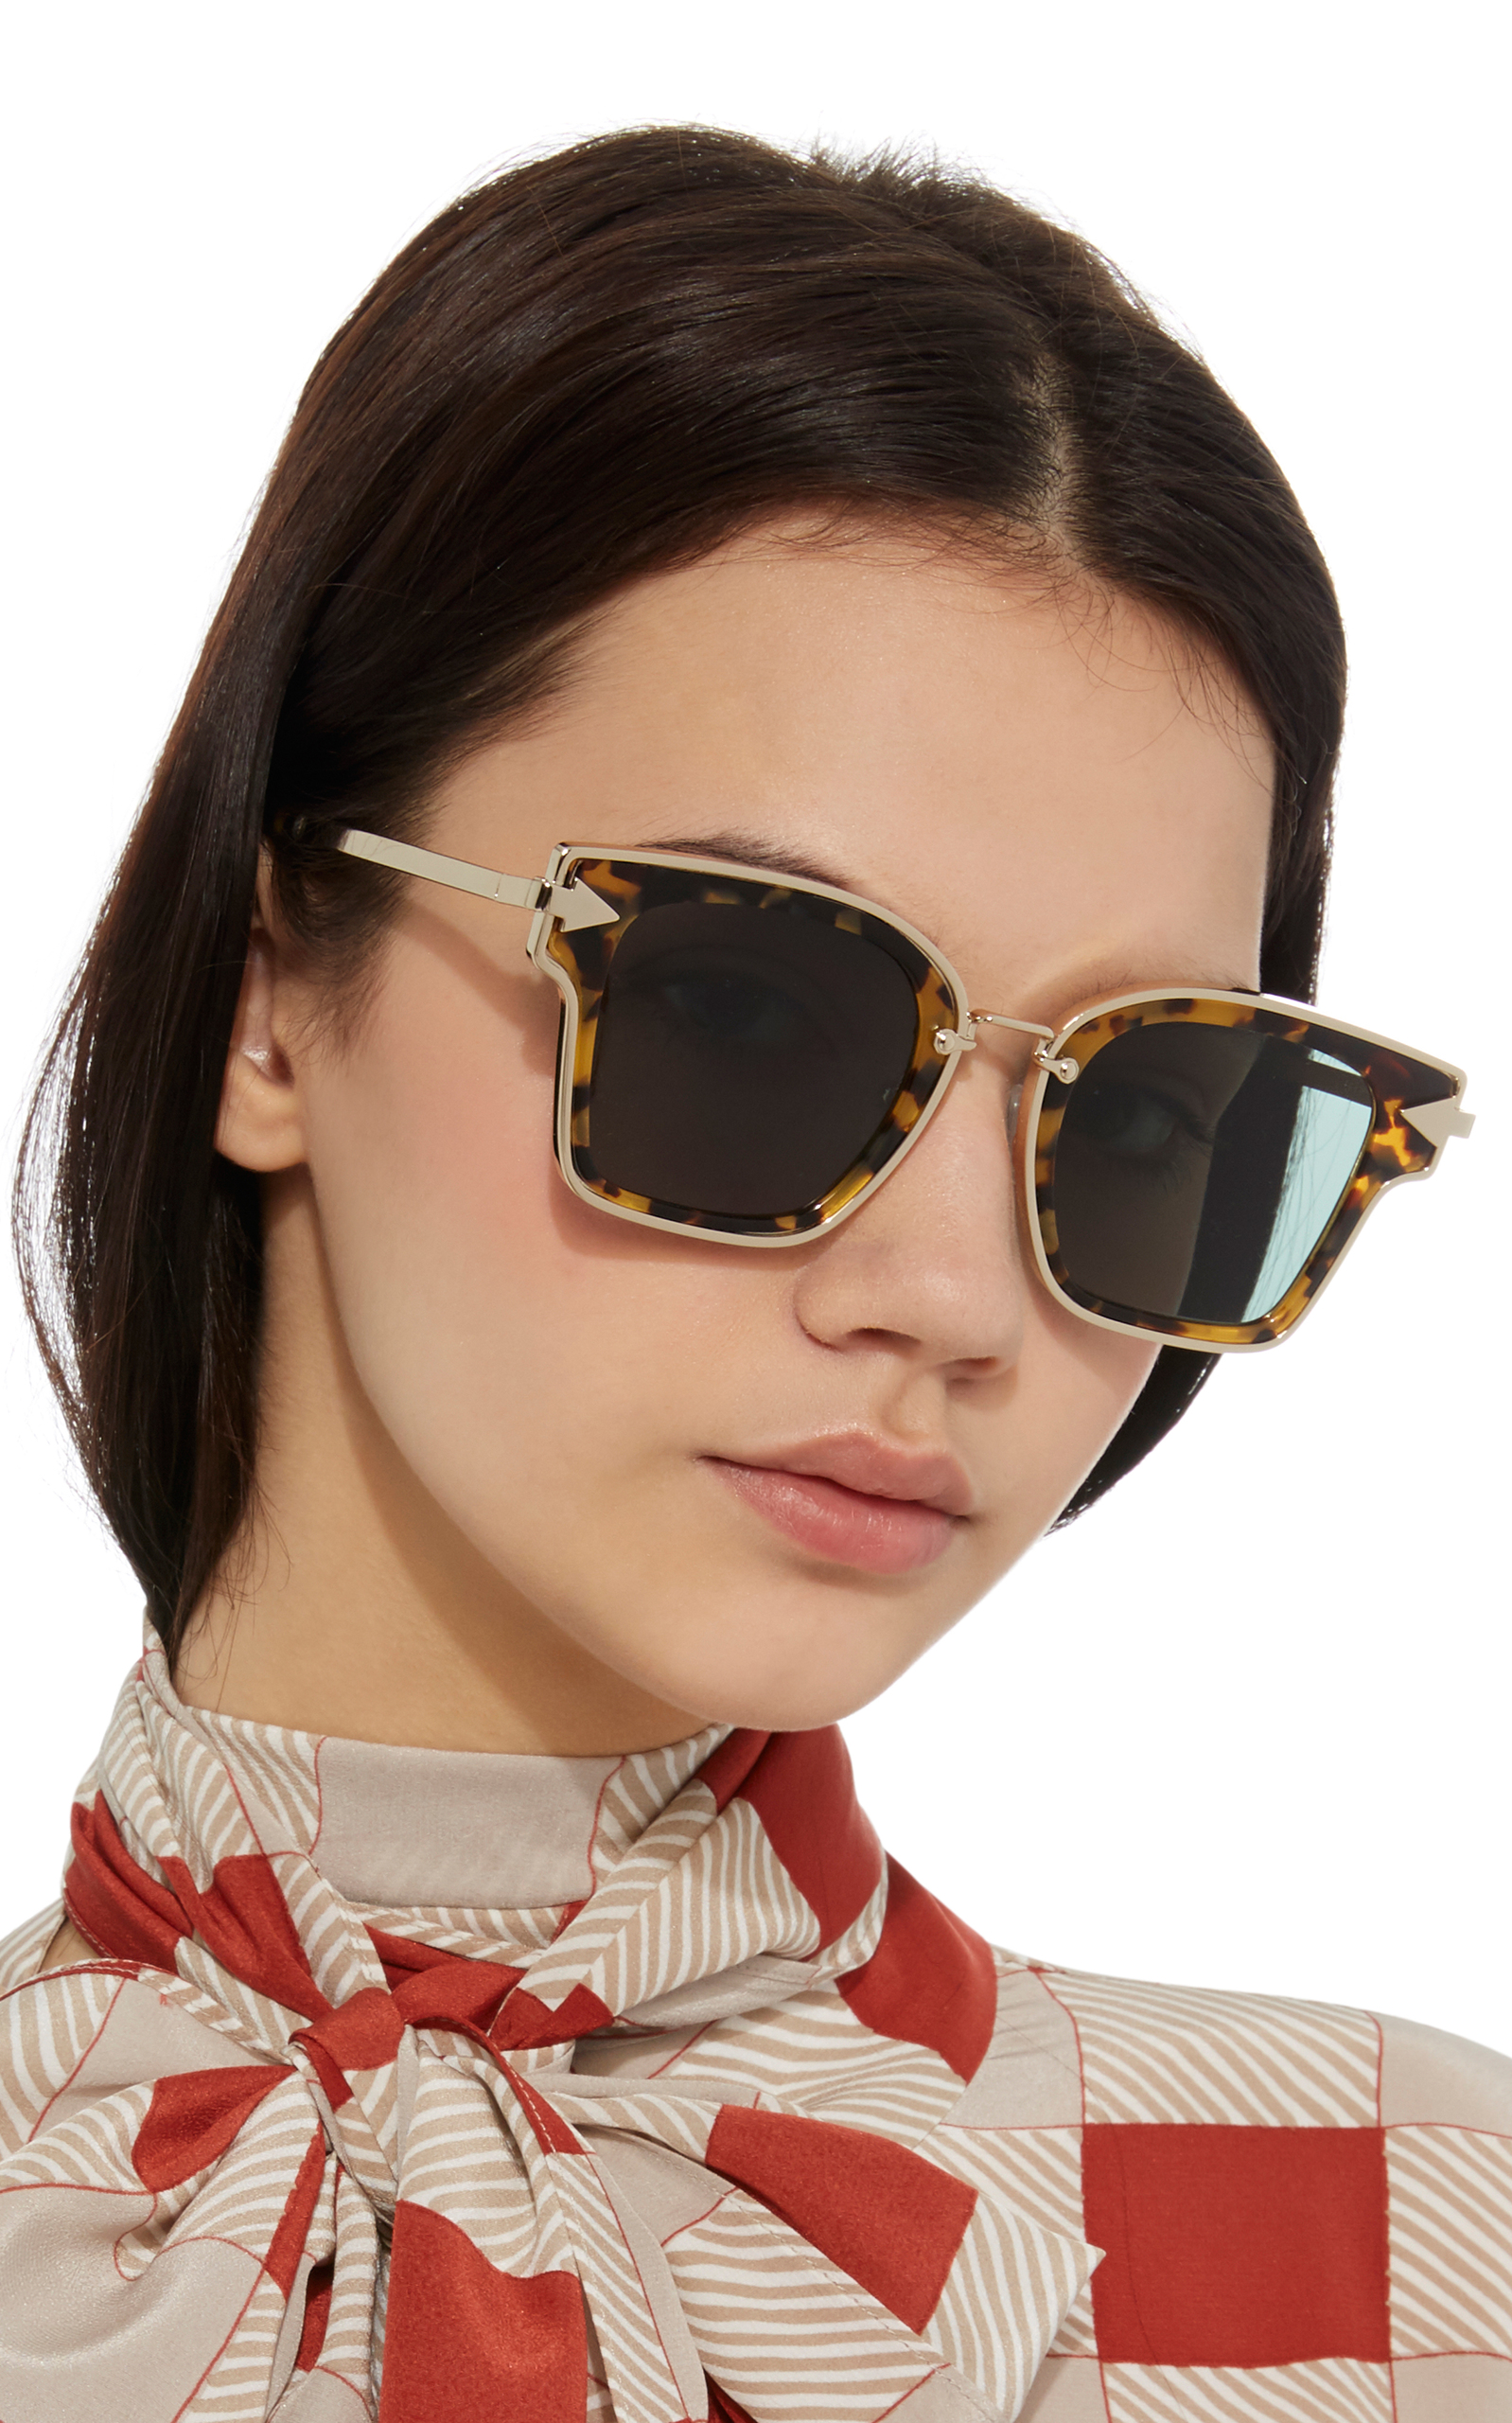 Rebellion Square-Frame Acetate and Metal Sunglasses Karen Walker KsqC1uNN